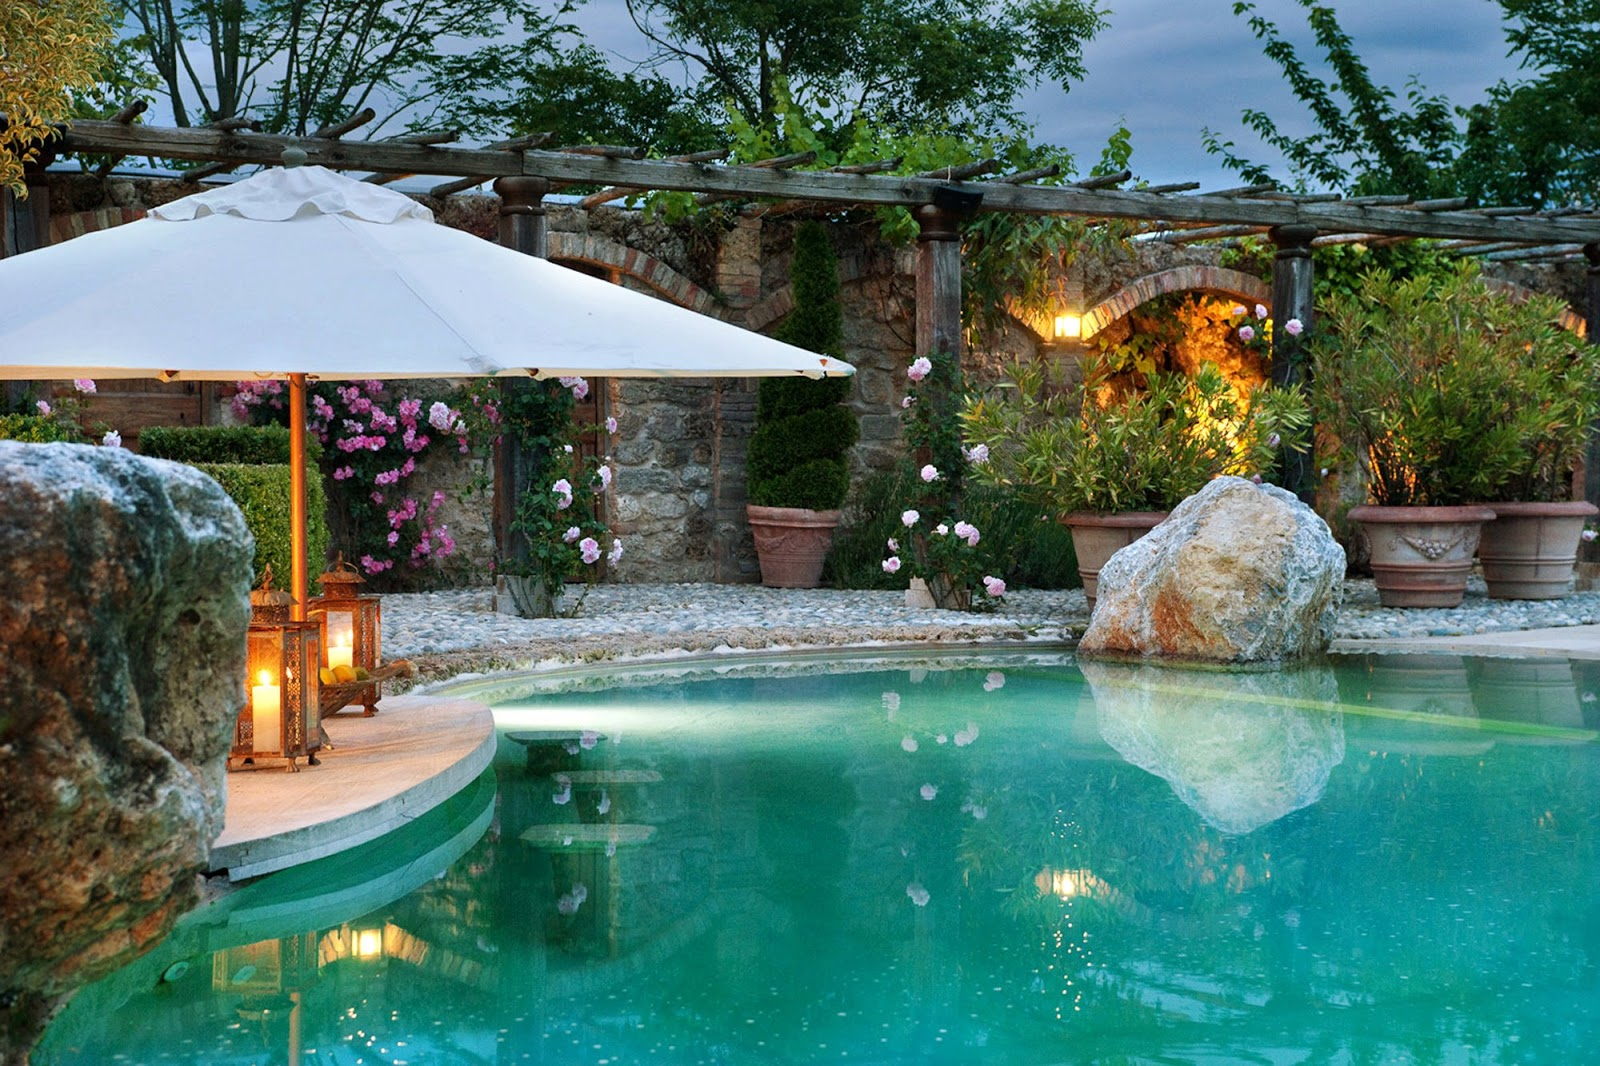 Dreams In Hd Our Honeymoon Plans Part I Tuscany